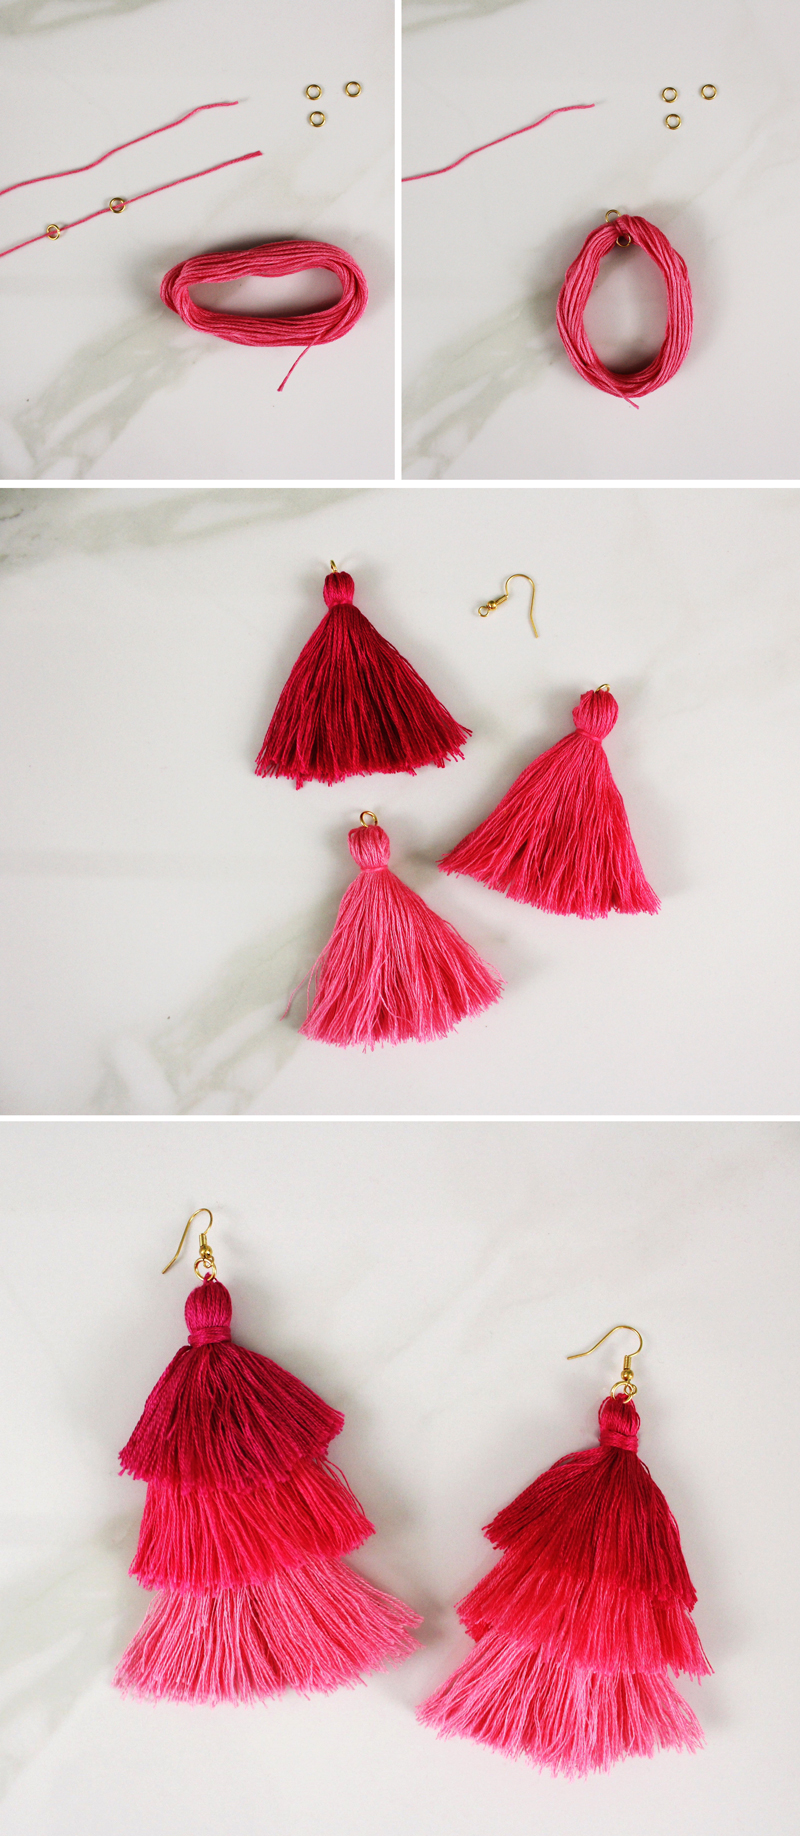 Diy Tassel Earrings In 3 Colorful Ways A Subtle Revelry